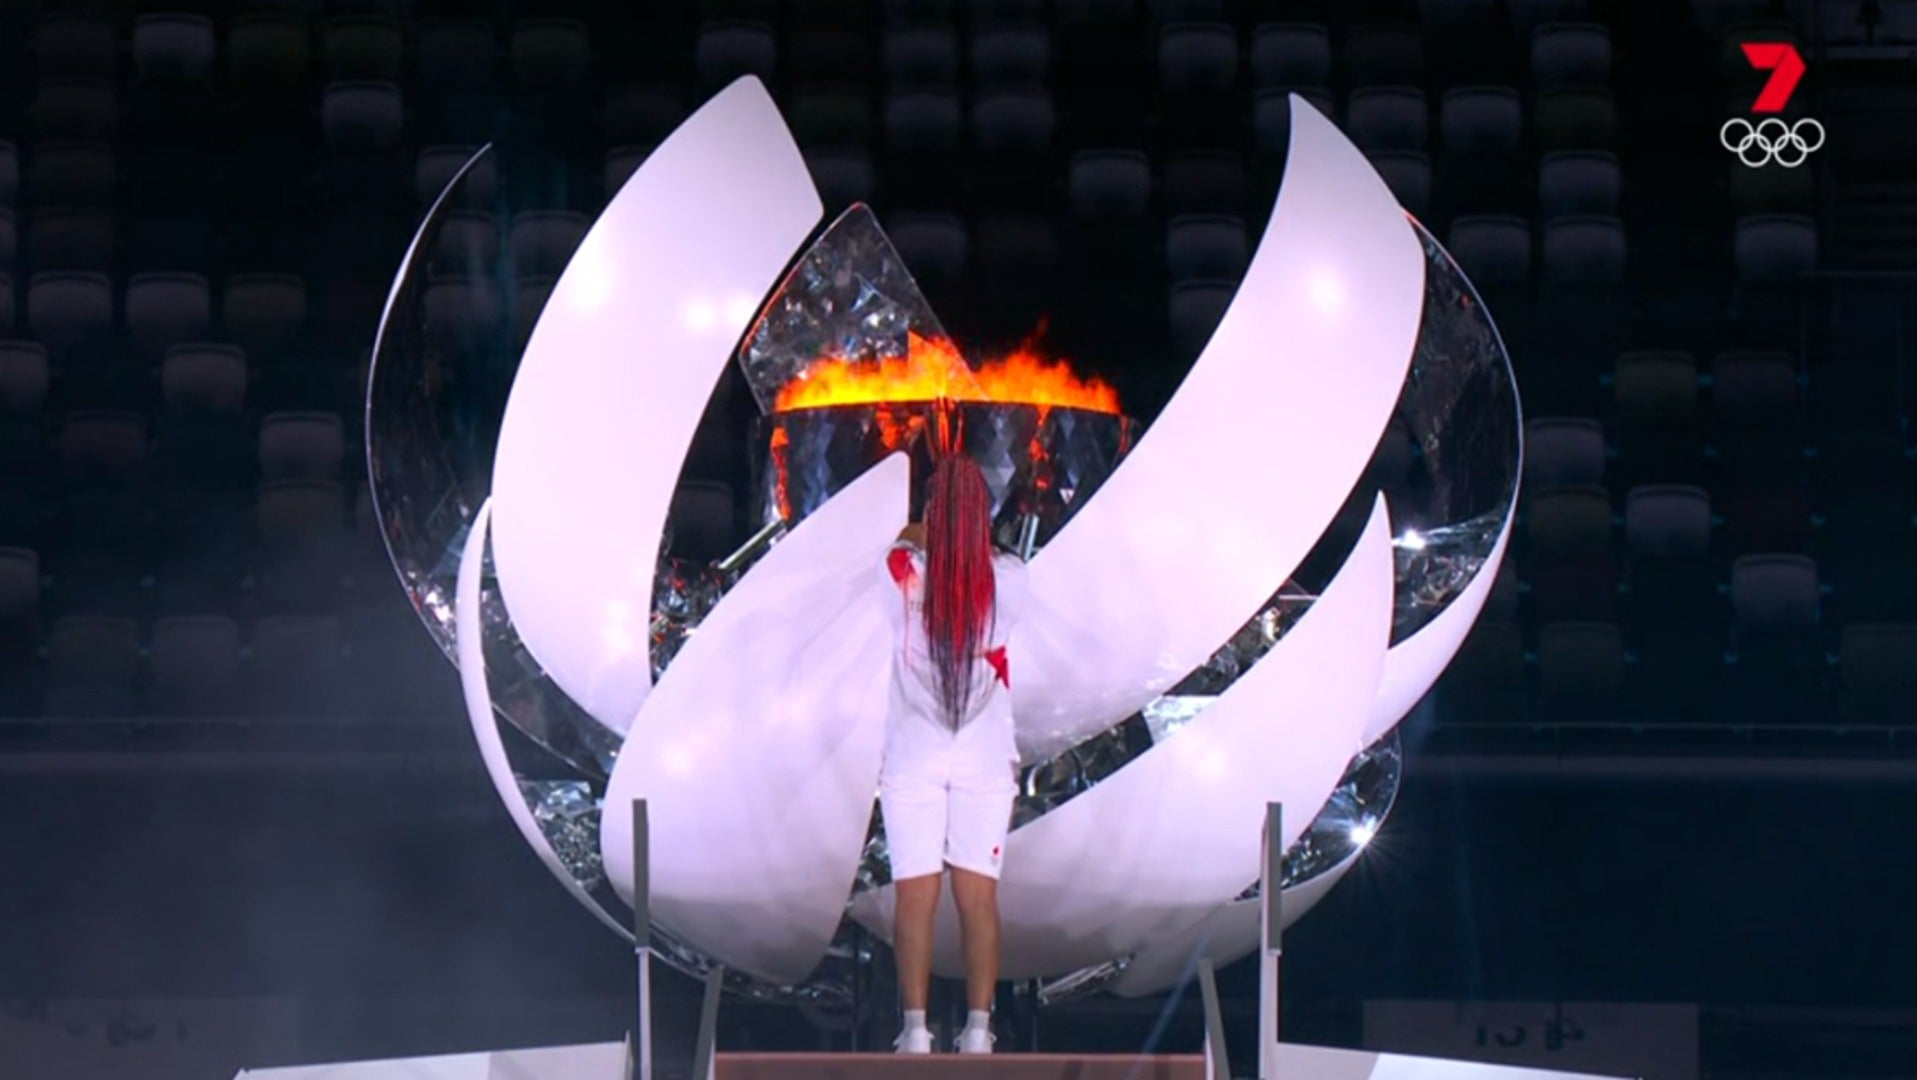 Tokyo 2020 Opening Ceremony takes the crown